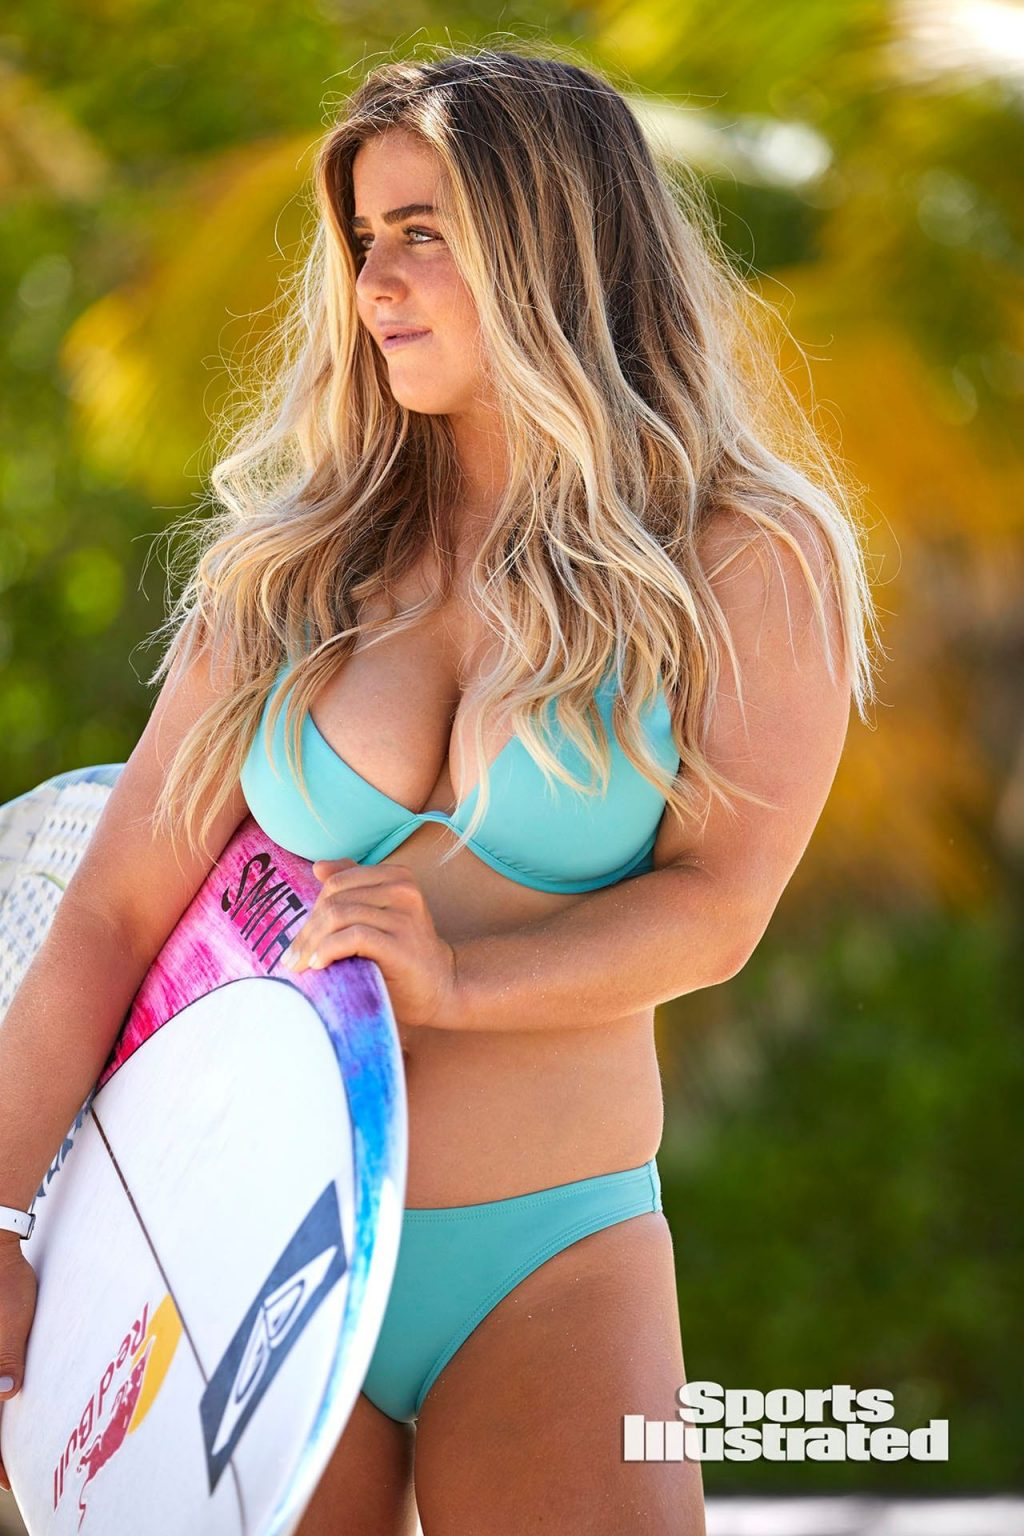 Caroline Marks Sexy – Sports Illustrated Swimsuit (45 Photos)